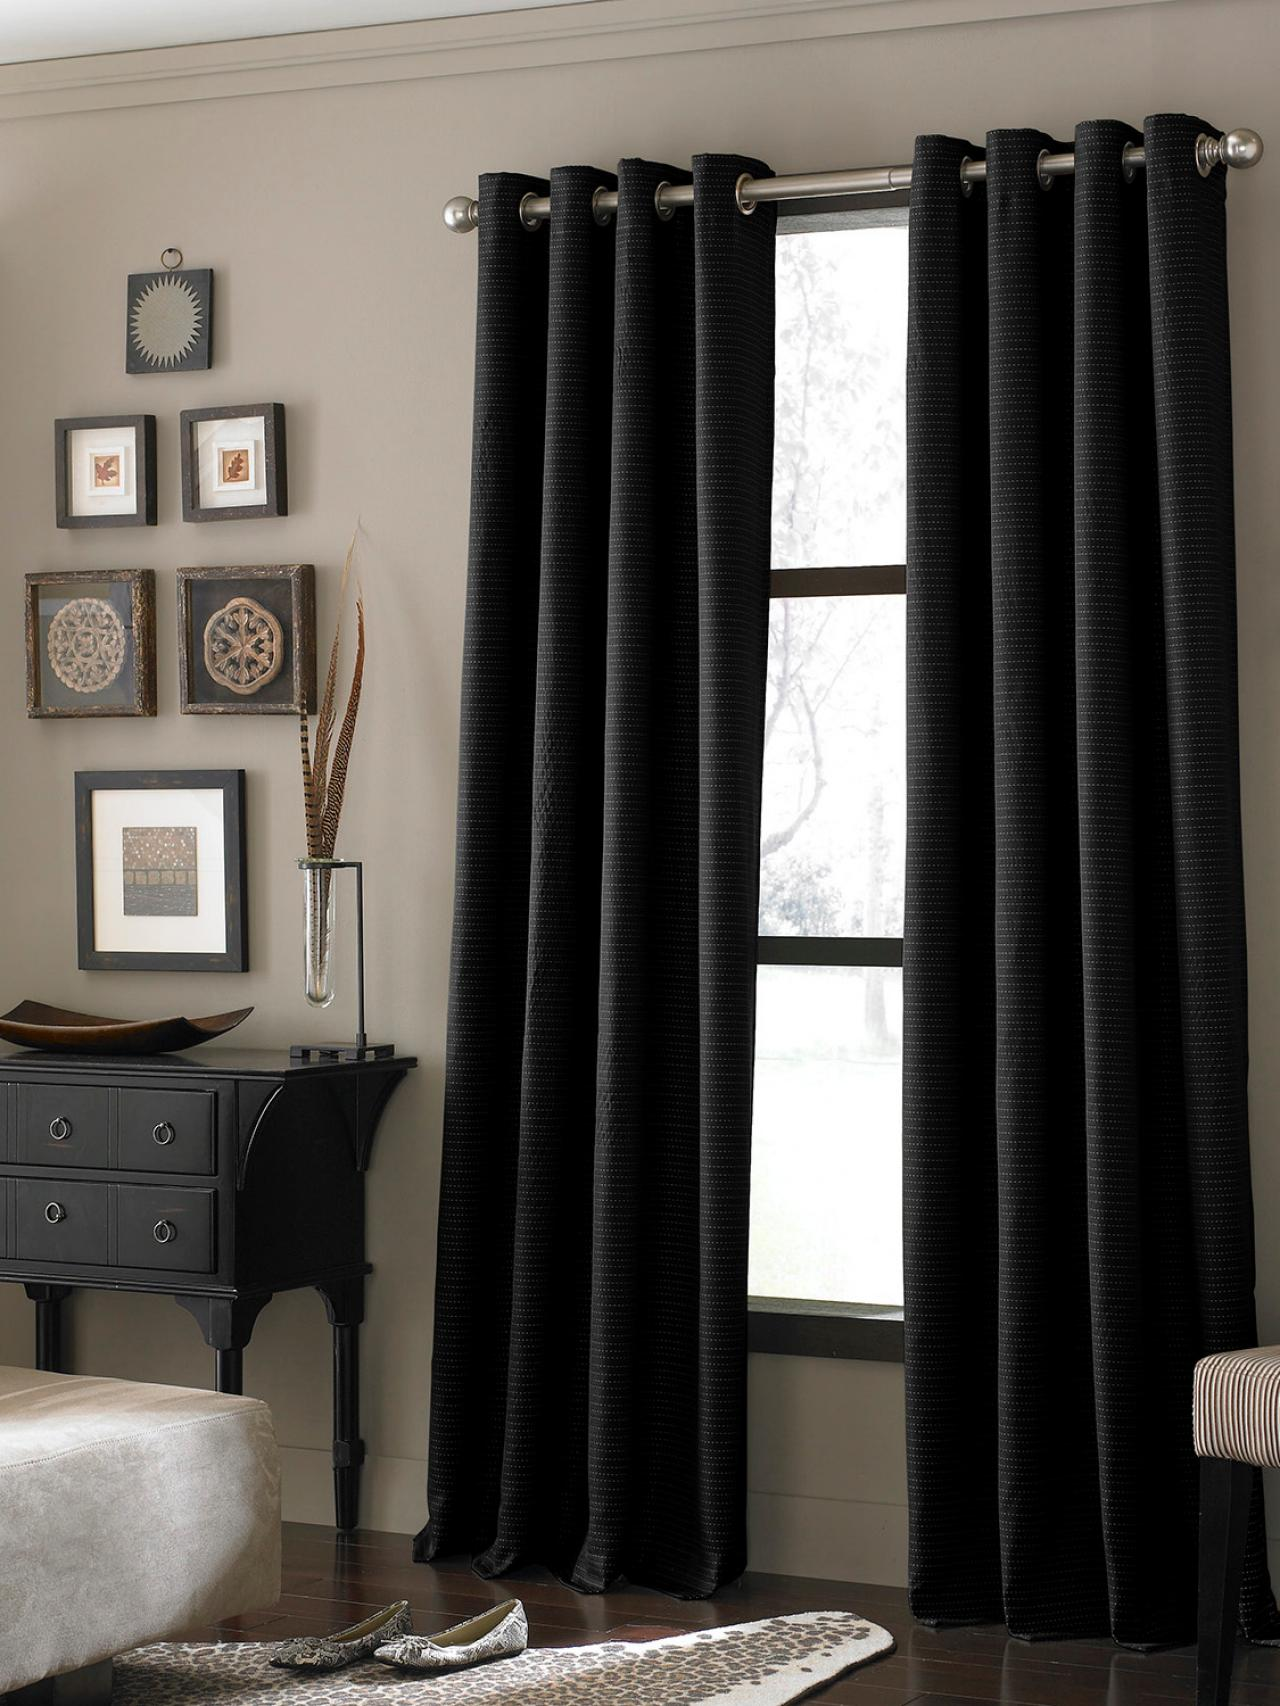 11. Black Textured Grommet